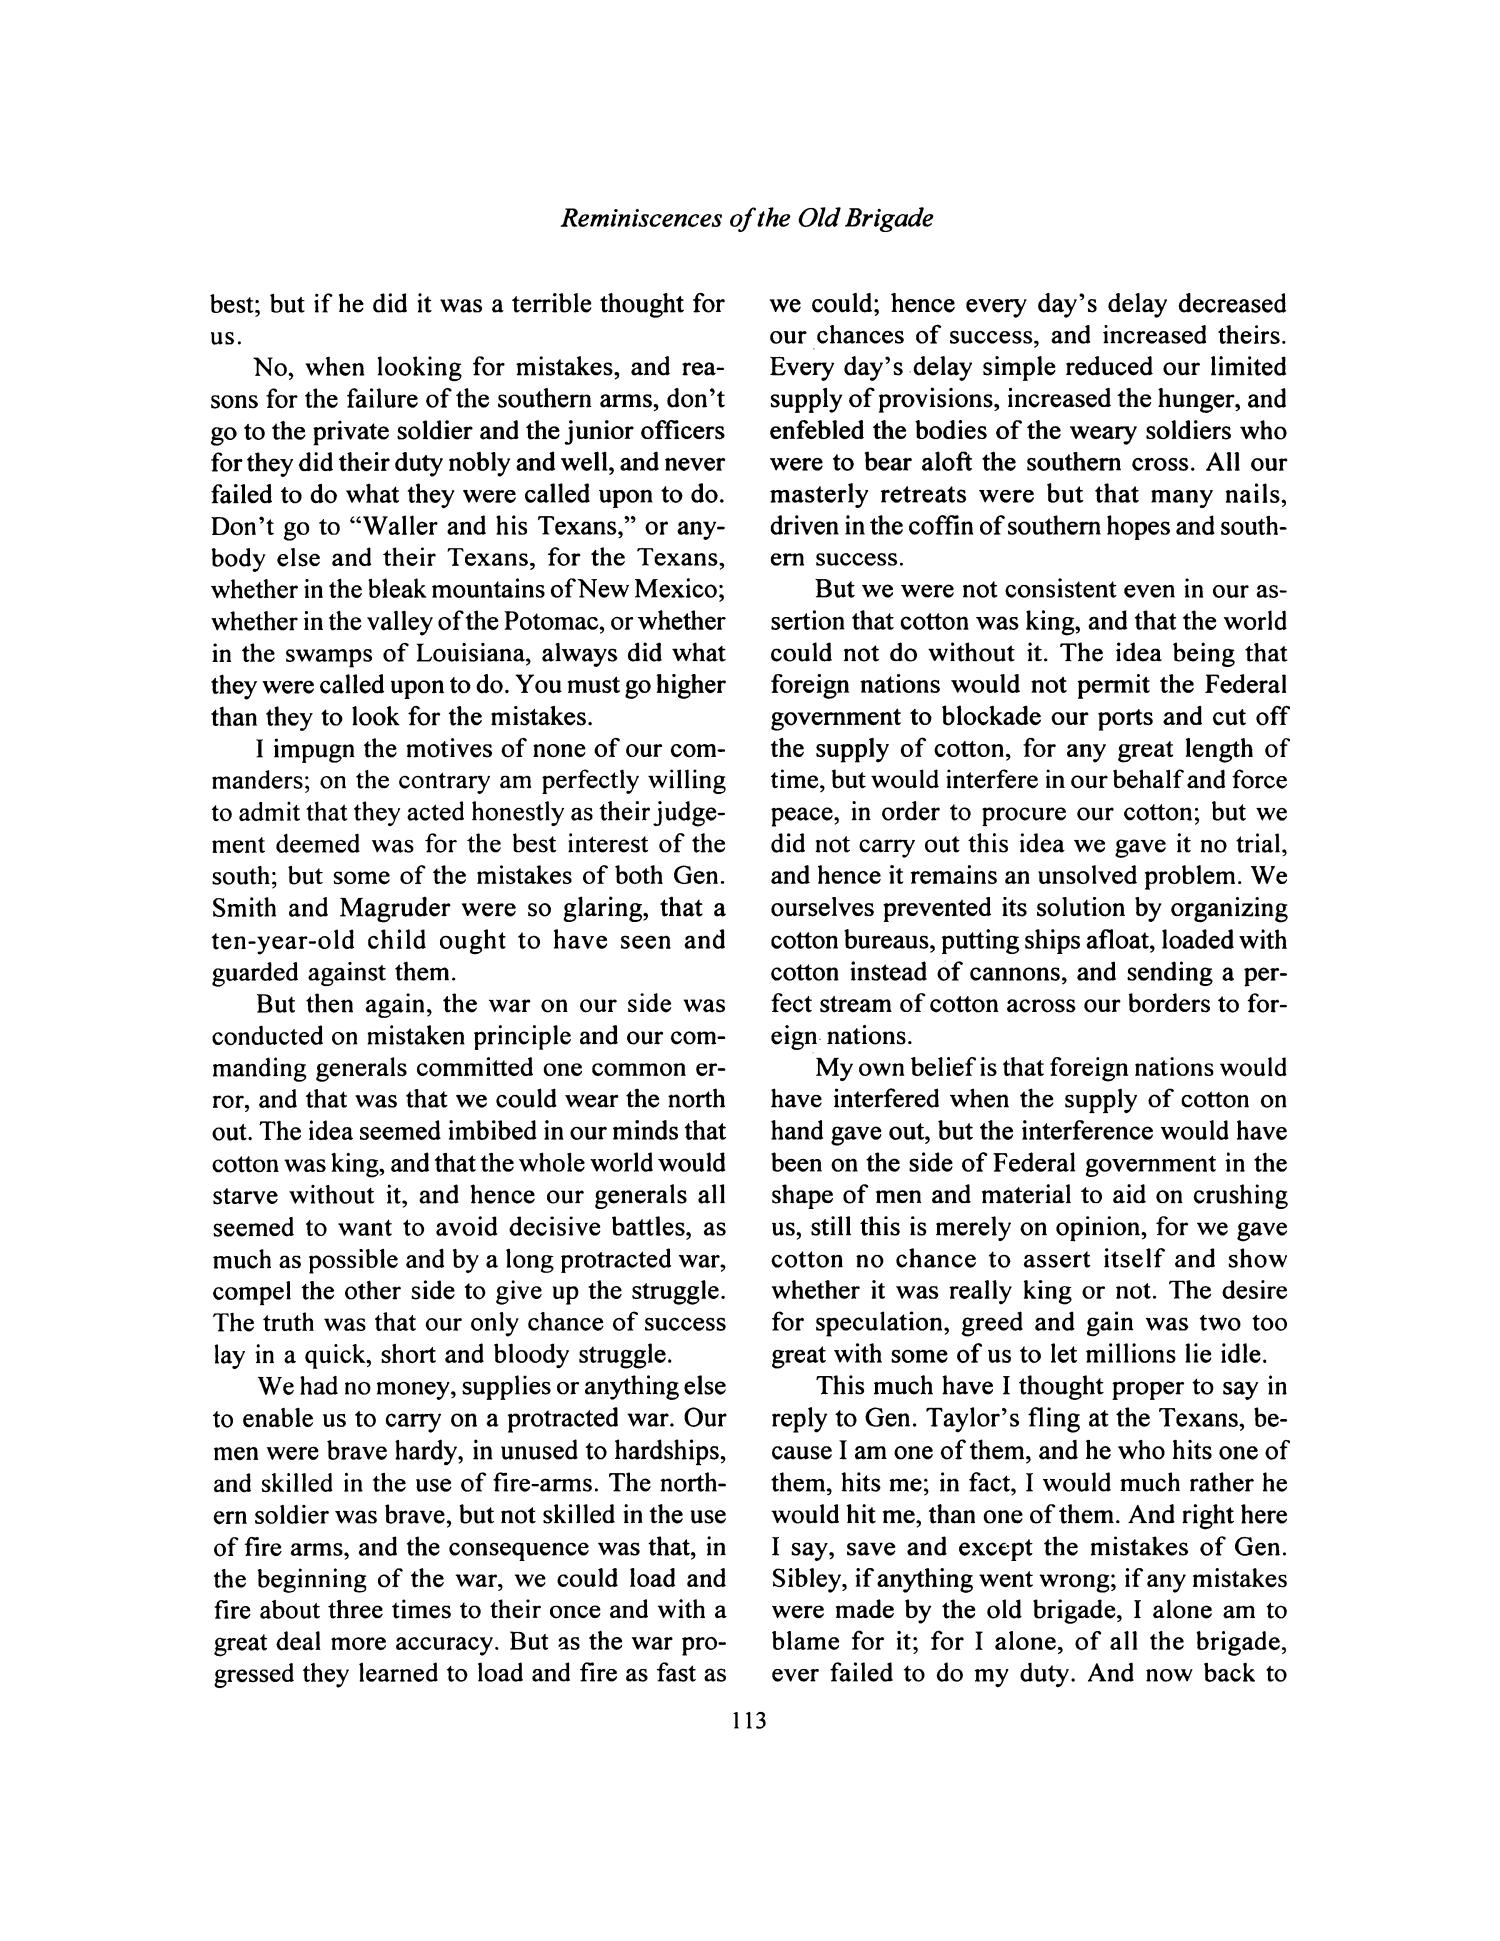 Nesbitt Memorial Library Journal, Volume 9, Number 2, May, 1999                                                                                                      113